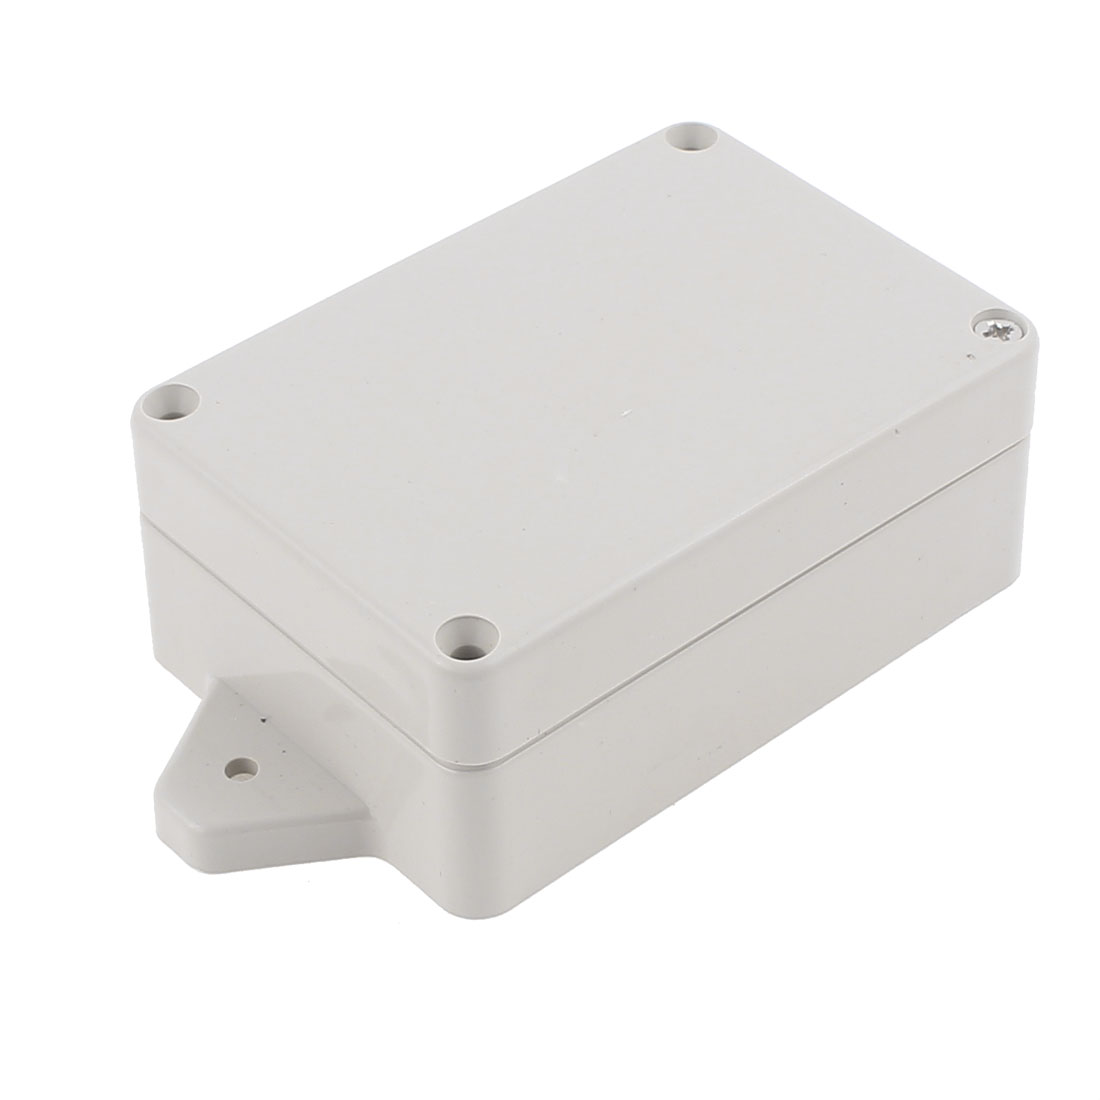 115 x 58 x 33mm Dustproof IP65 Junction Box DIY Terminal Connecting Box Enclosure